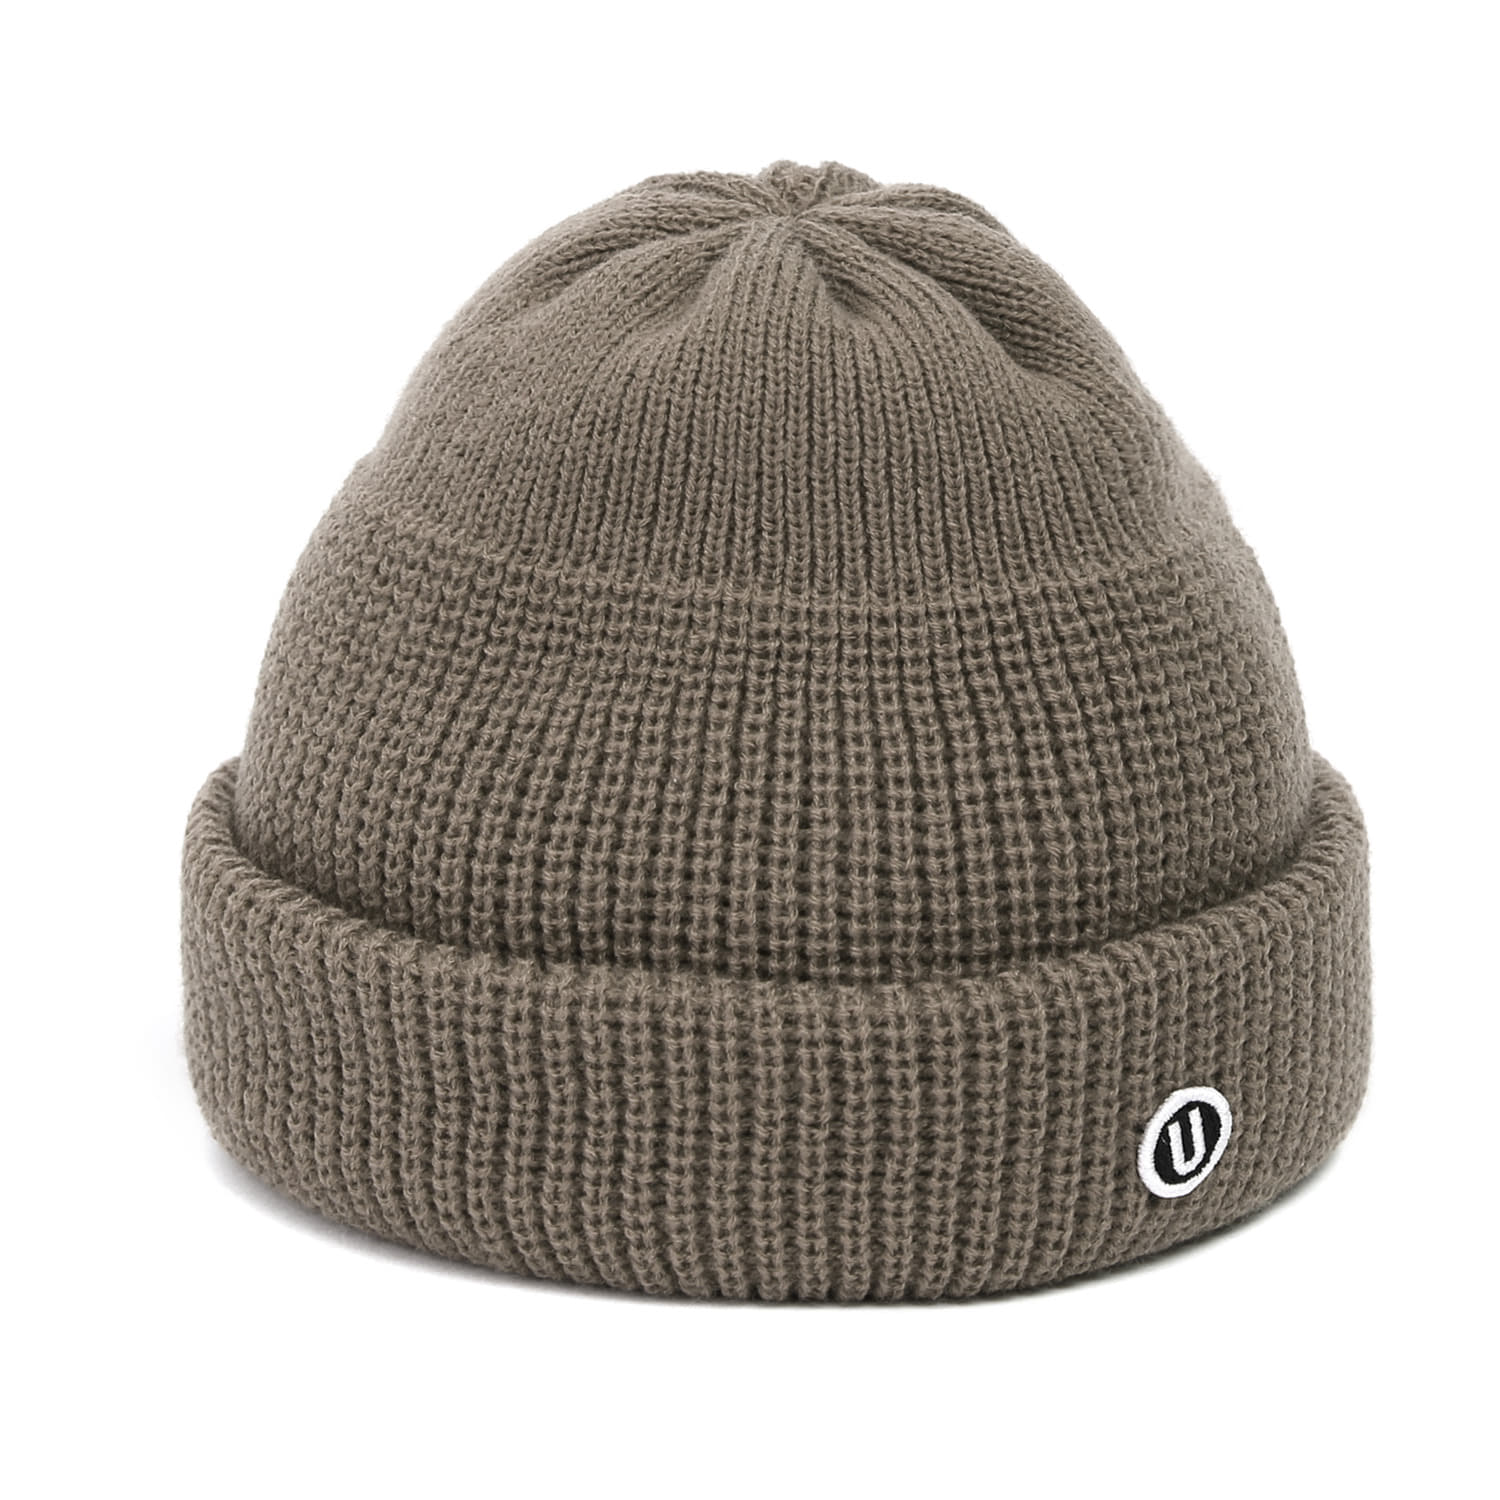 BEANIE / MONK FIT / U LOGO / K GREY